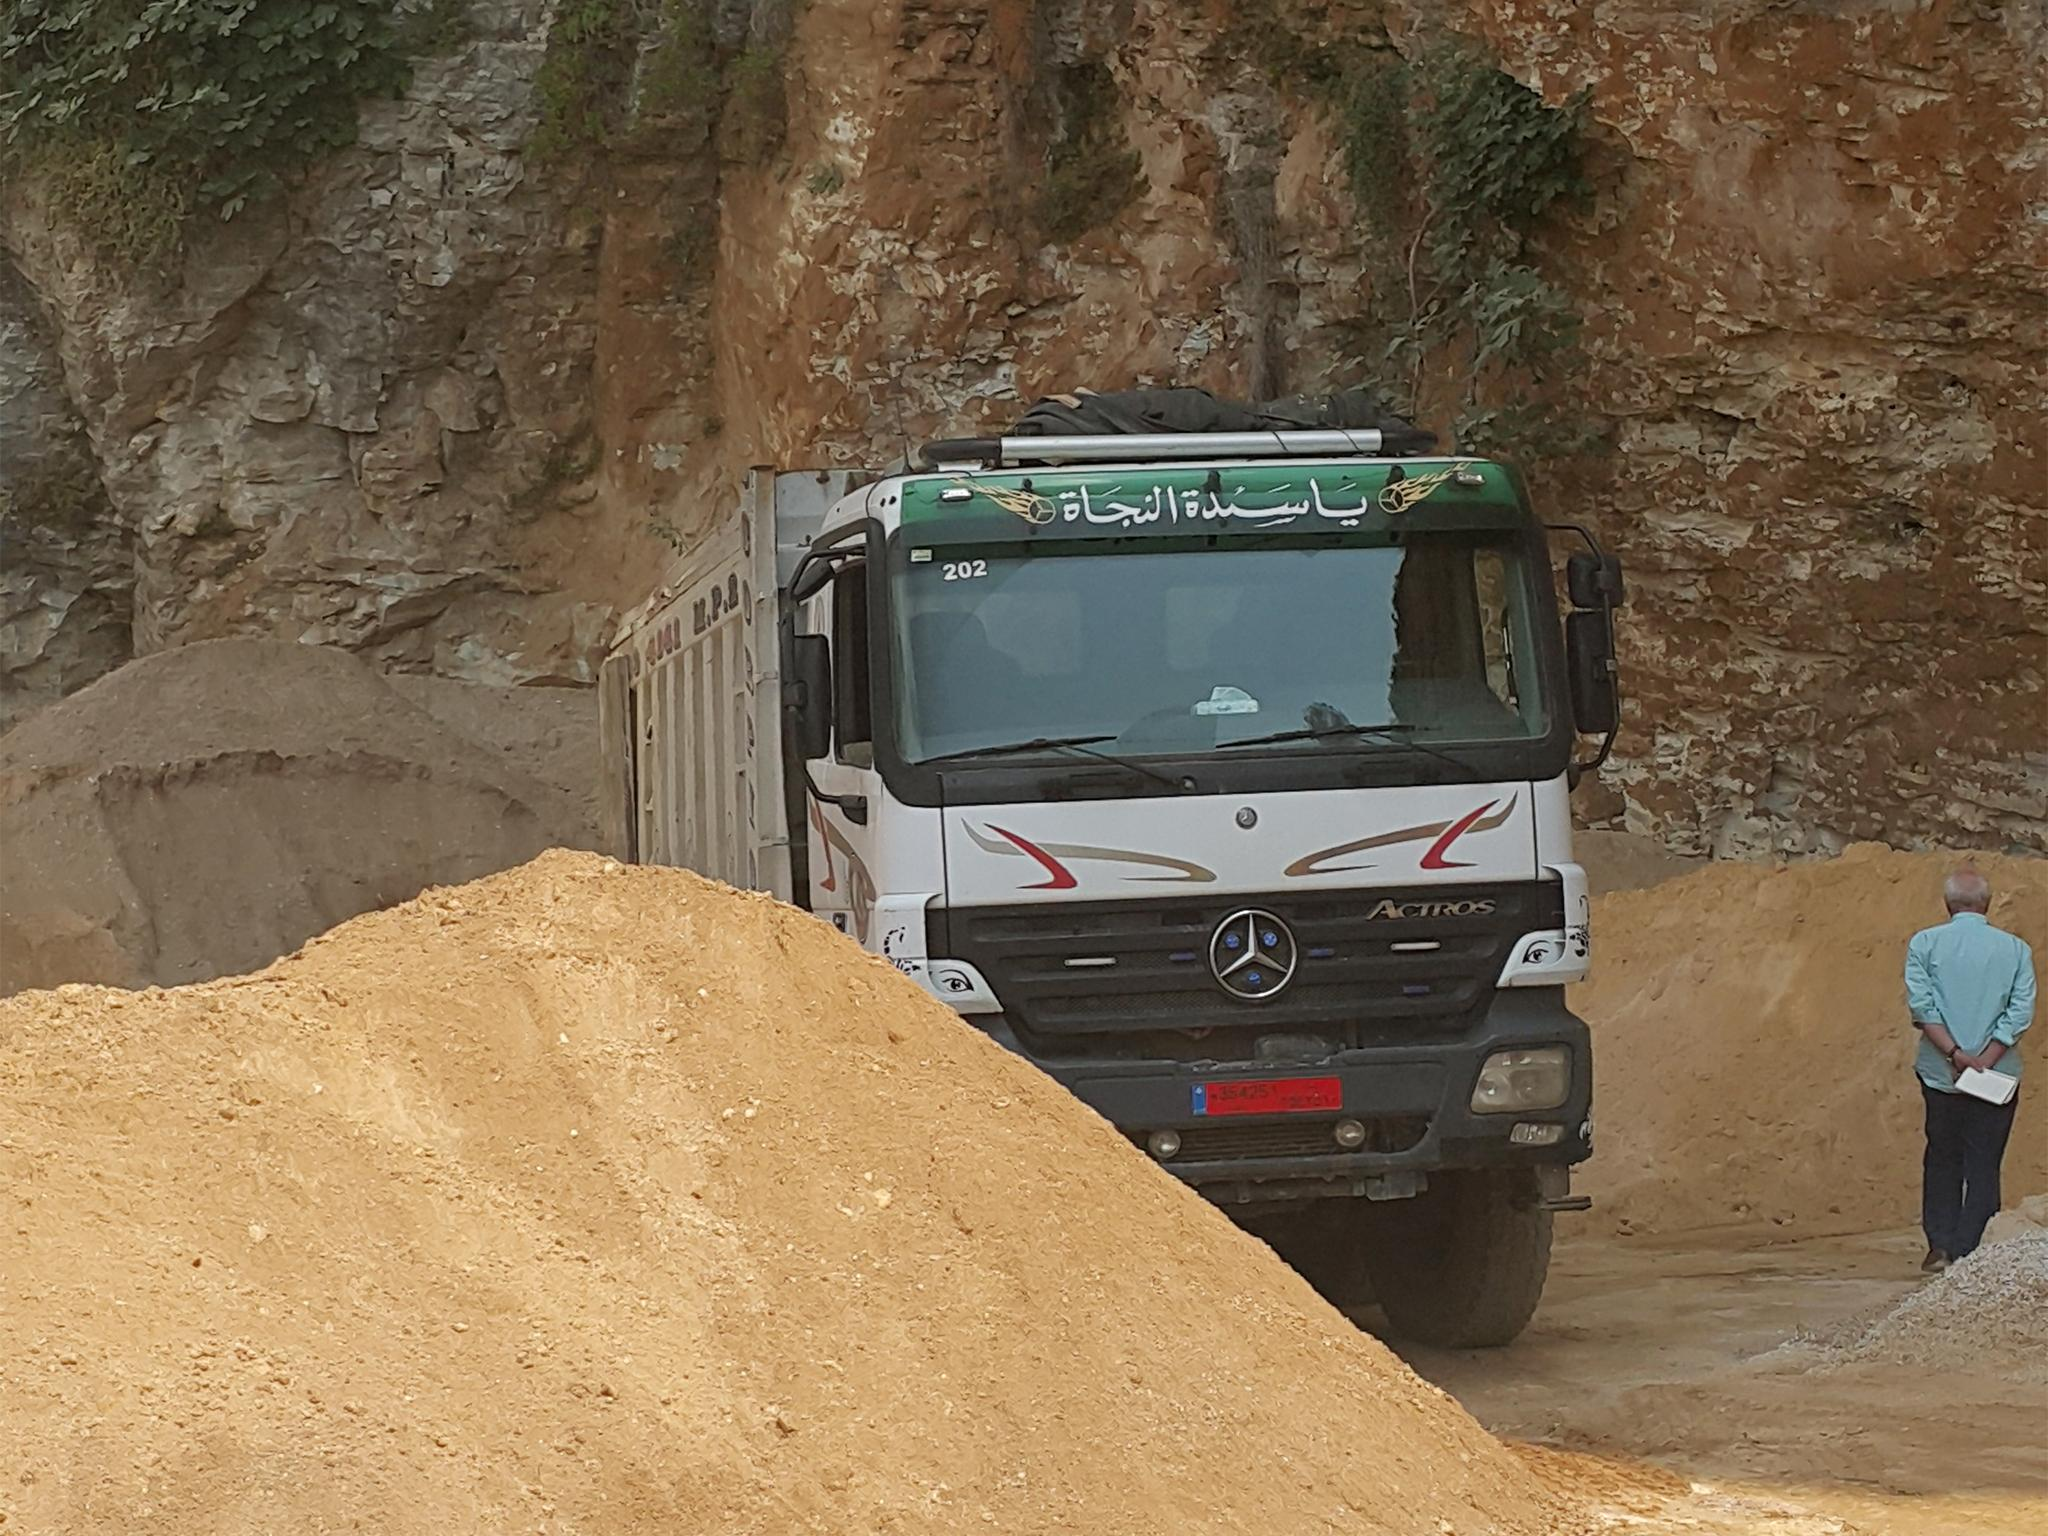 the-independents-robert-fisk-watches-the-sand-unloaded-in-a-private-building-site-on-the-coast-of-lebanon.jpg